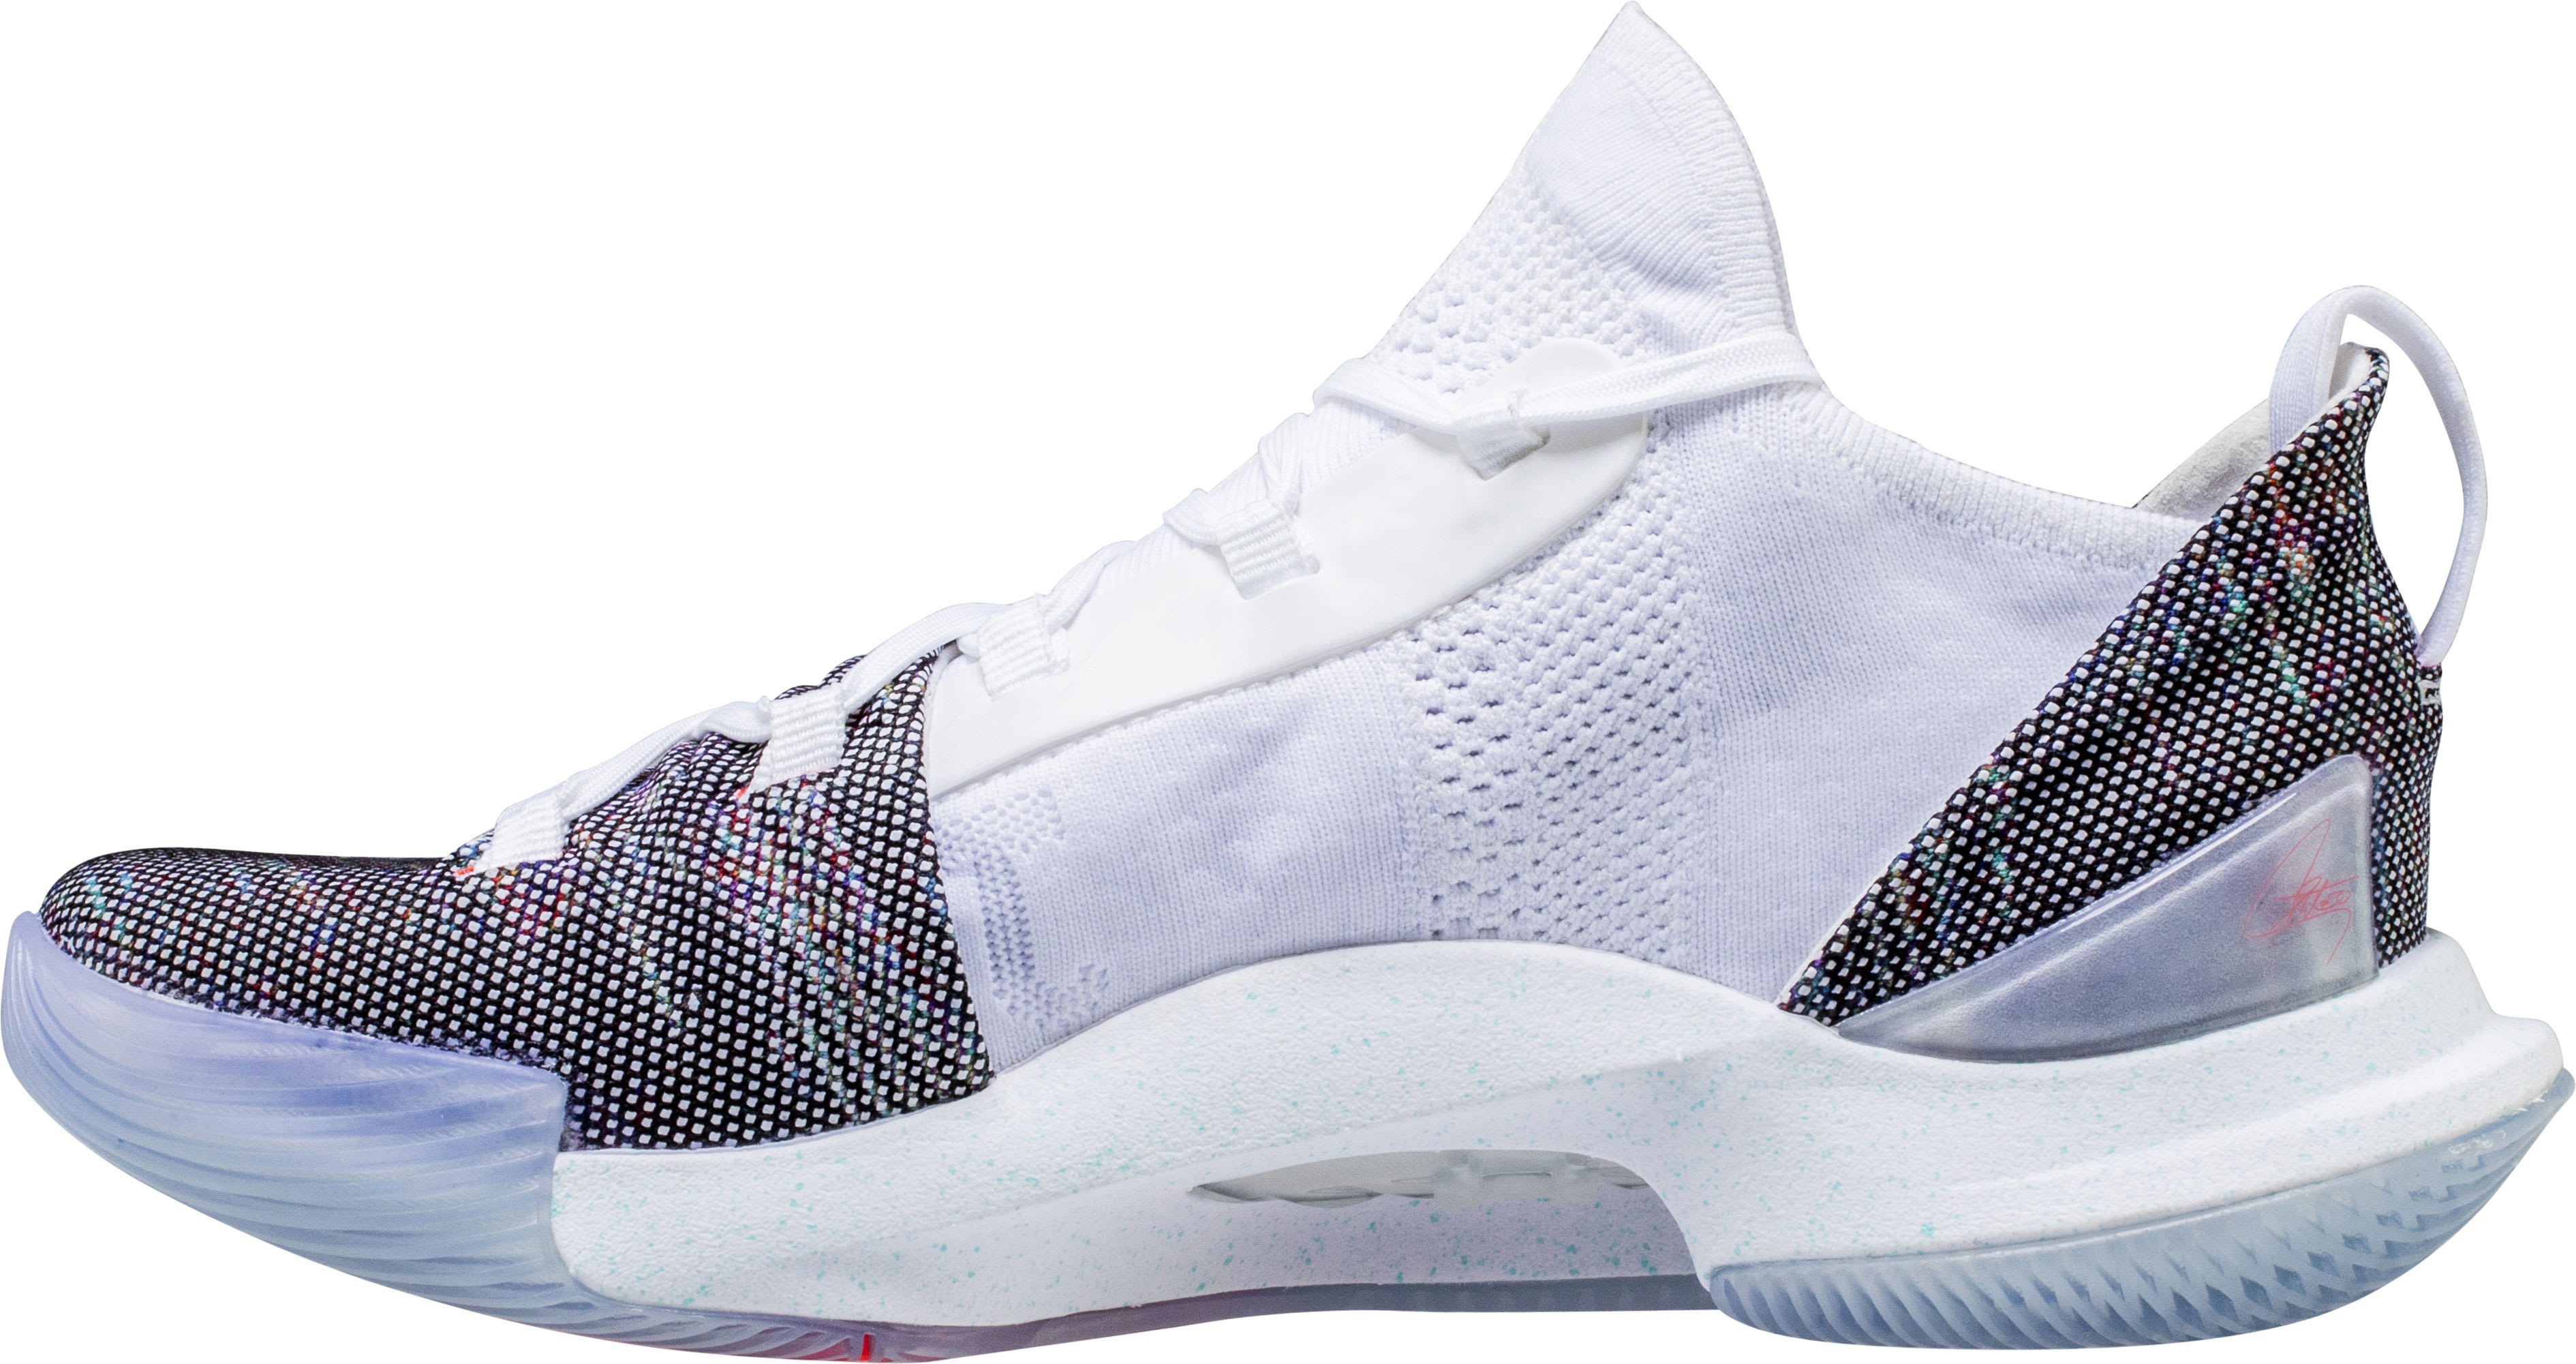 Under Armour Curry 5 'Welcome Home' (Medial)